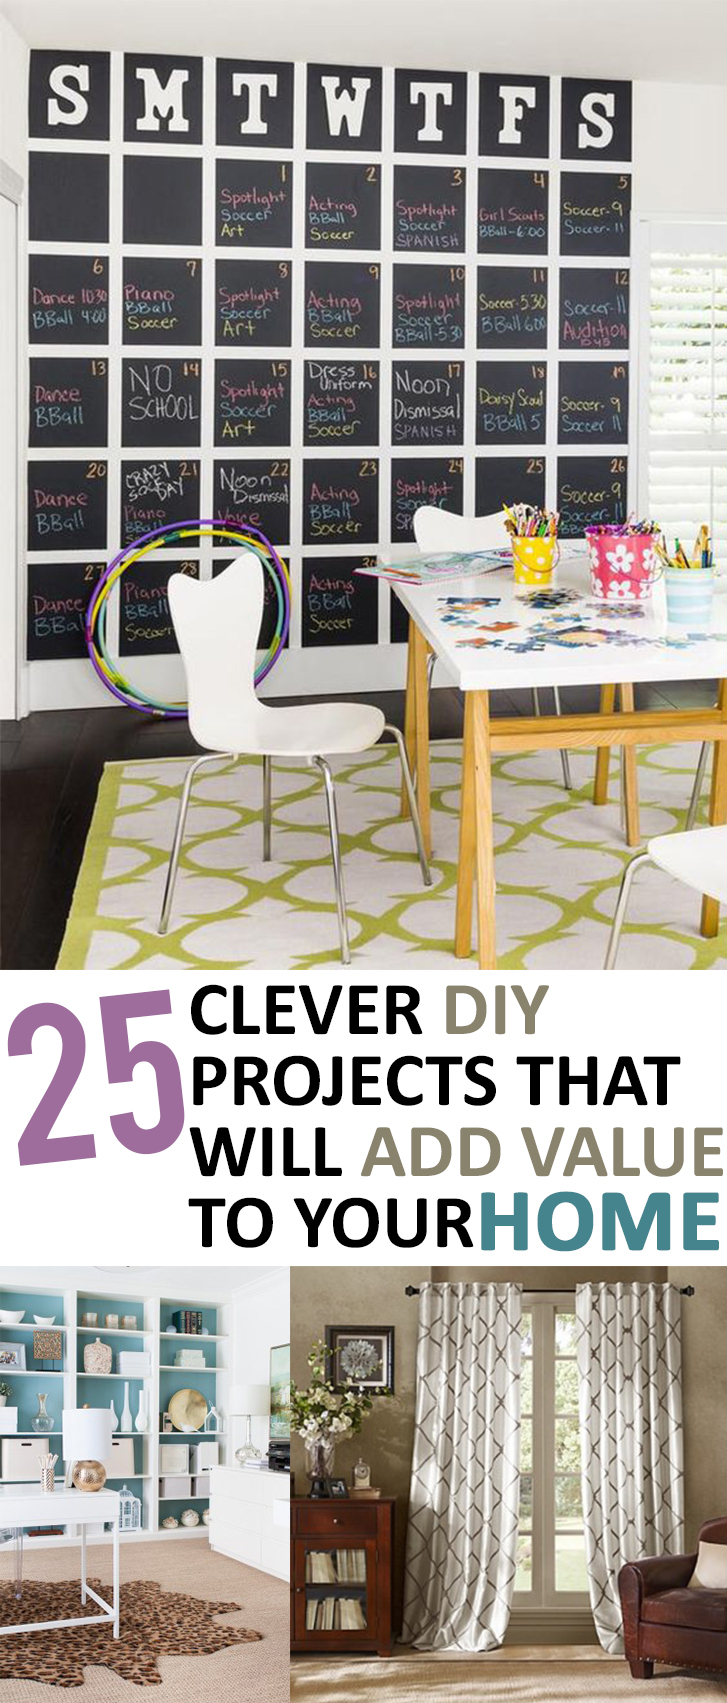 DIY projects, clever DIYs, popular pin, clever projects, DIY, DIY home, organization, DIY organization, clever projects.